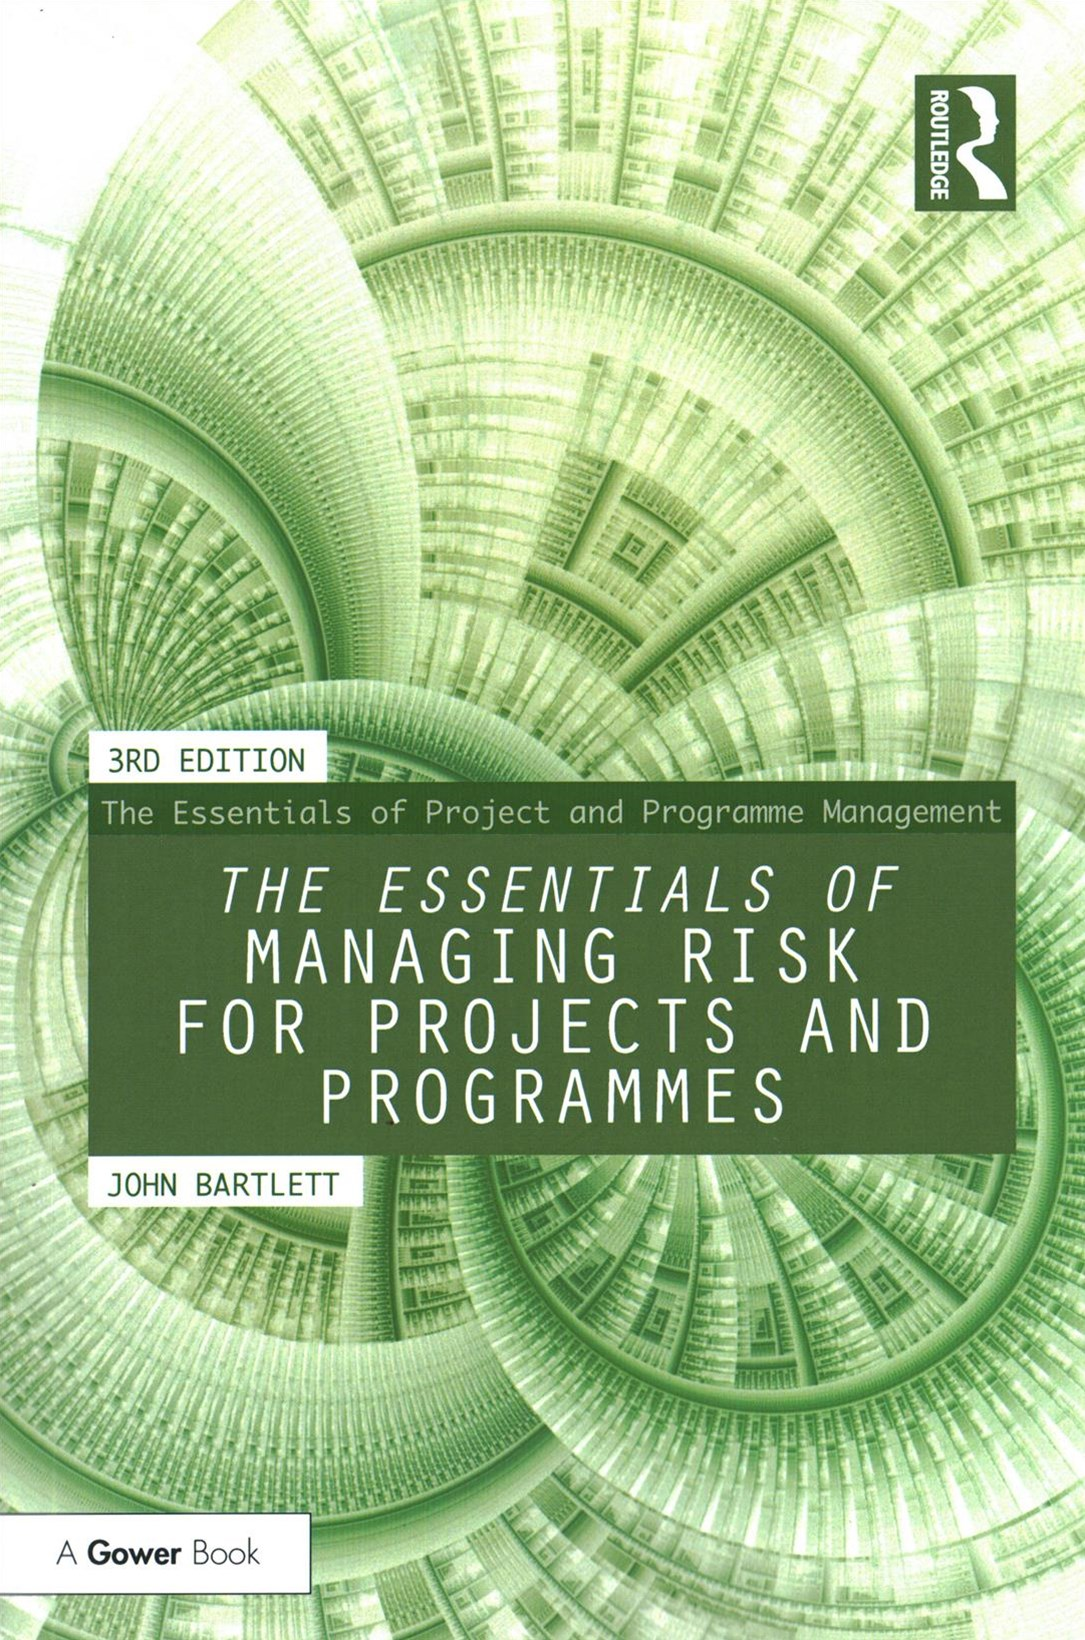 The Essentials of Managing Risk